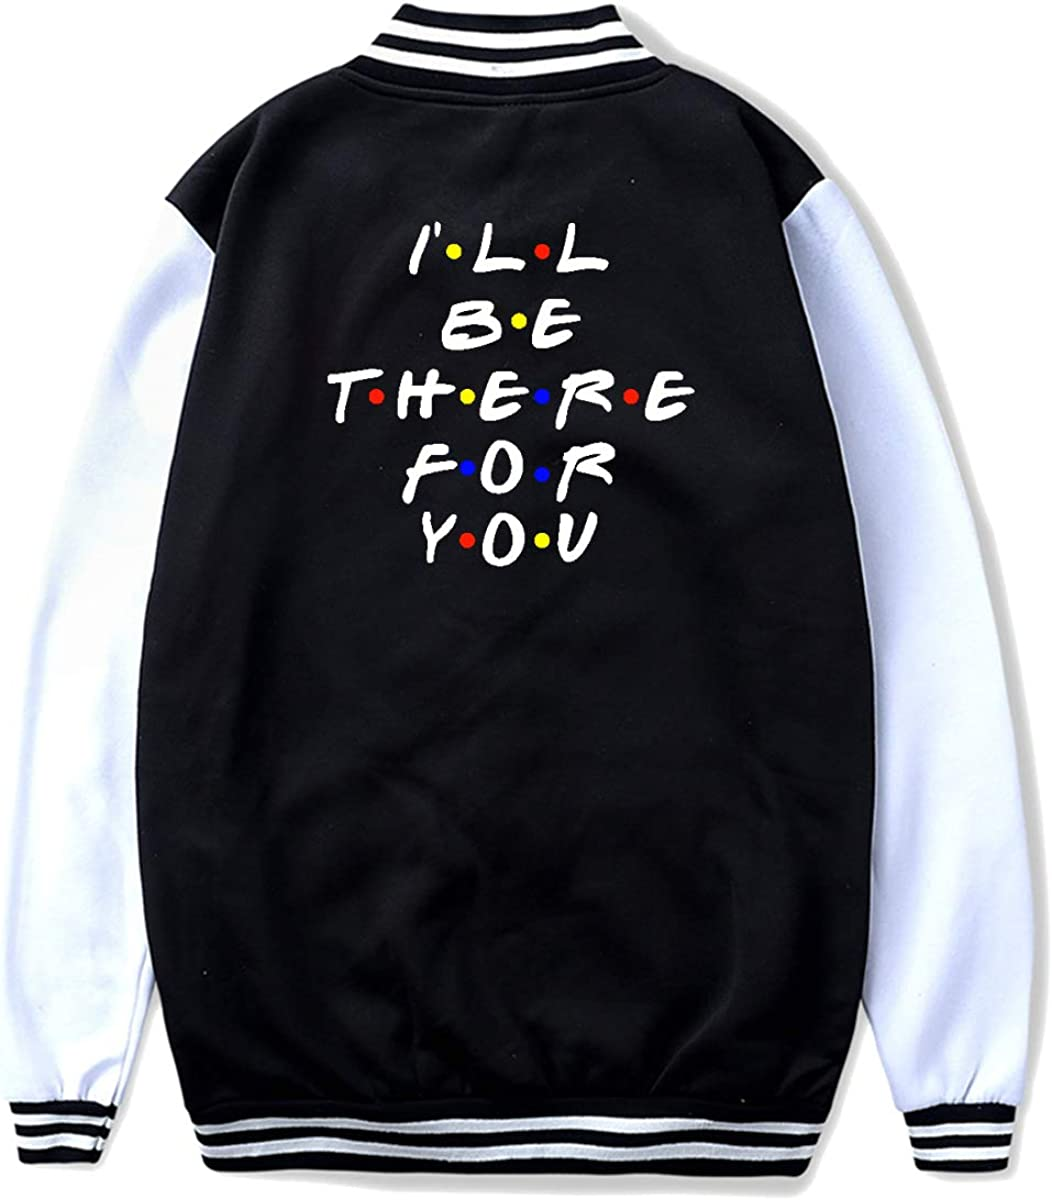 I Wii Be There for You Youth Classic Baseball Uniform Brushed Keep Warm Jackets